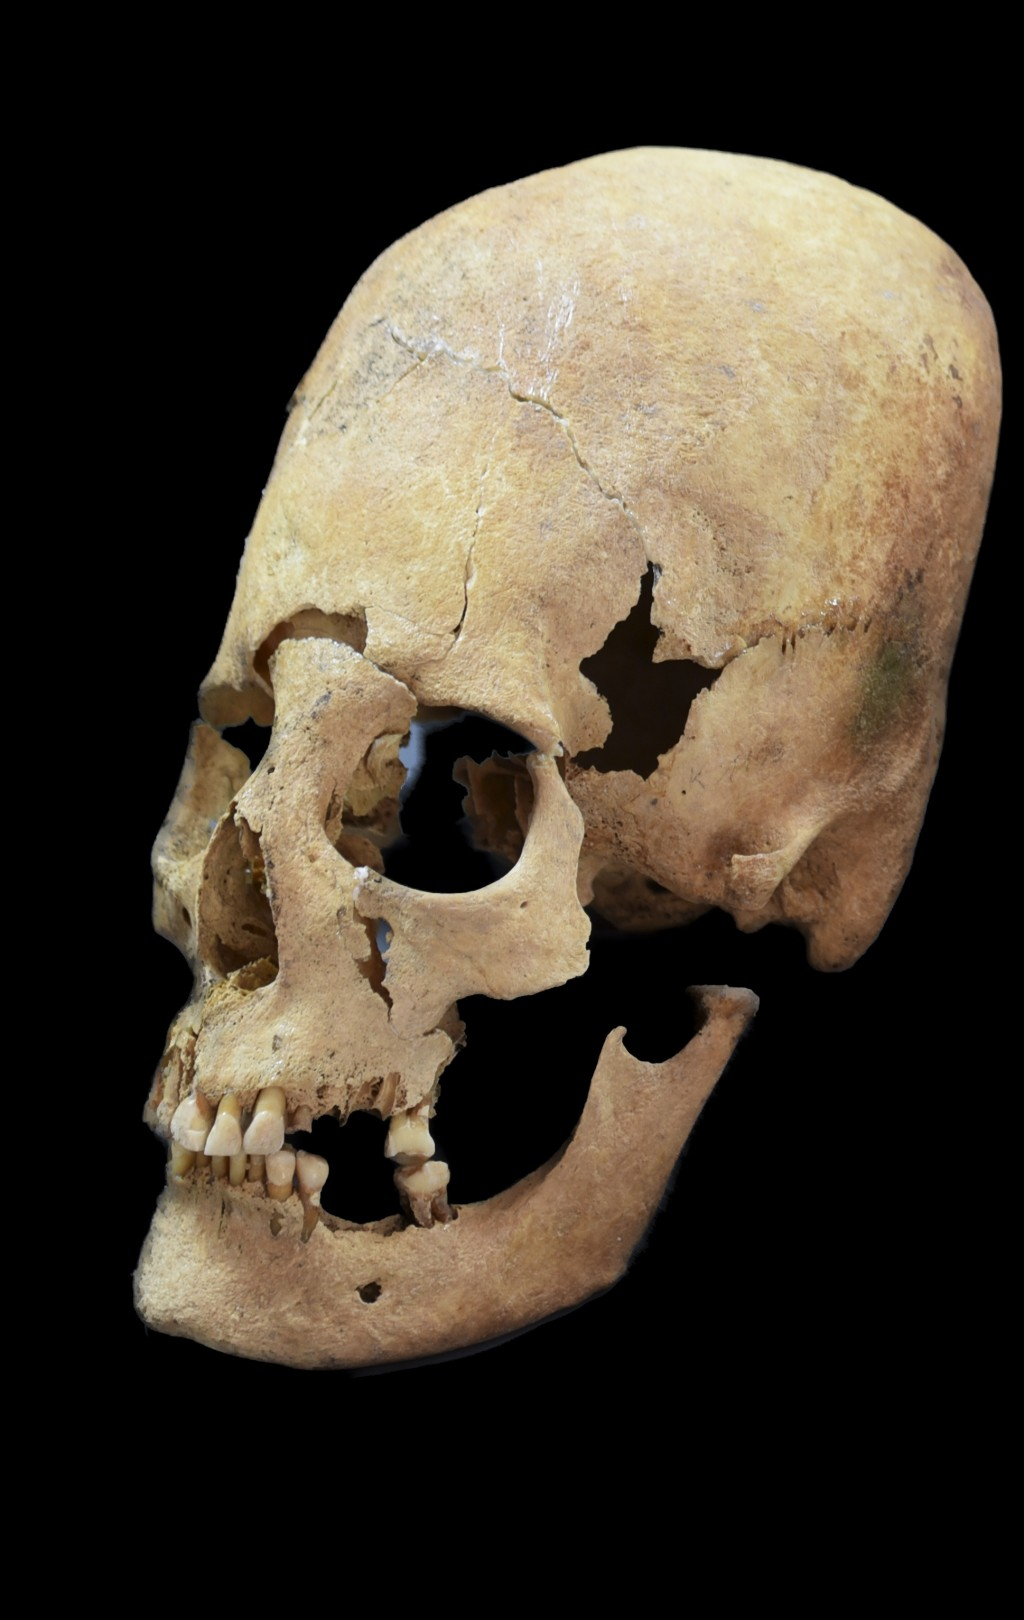 Photo provided by the State collection for Anthropology and Palaeoanatomy Munich shows an artificially deformed female skull from Altenerding, an Eary